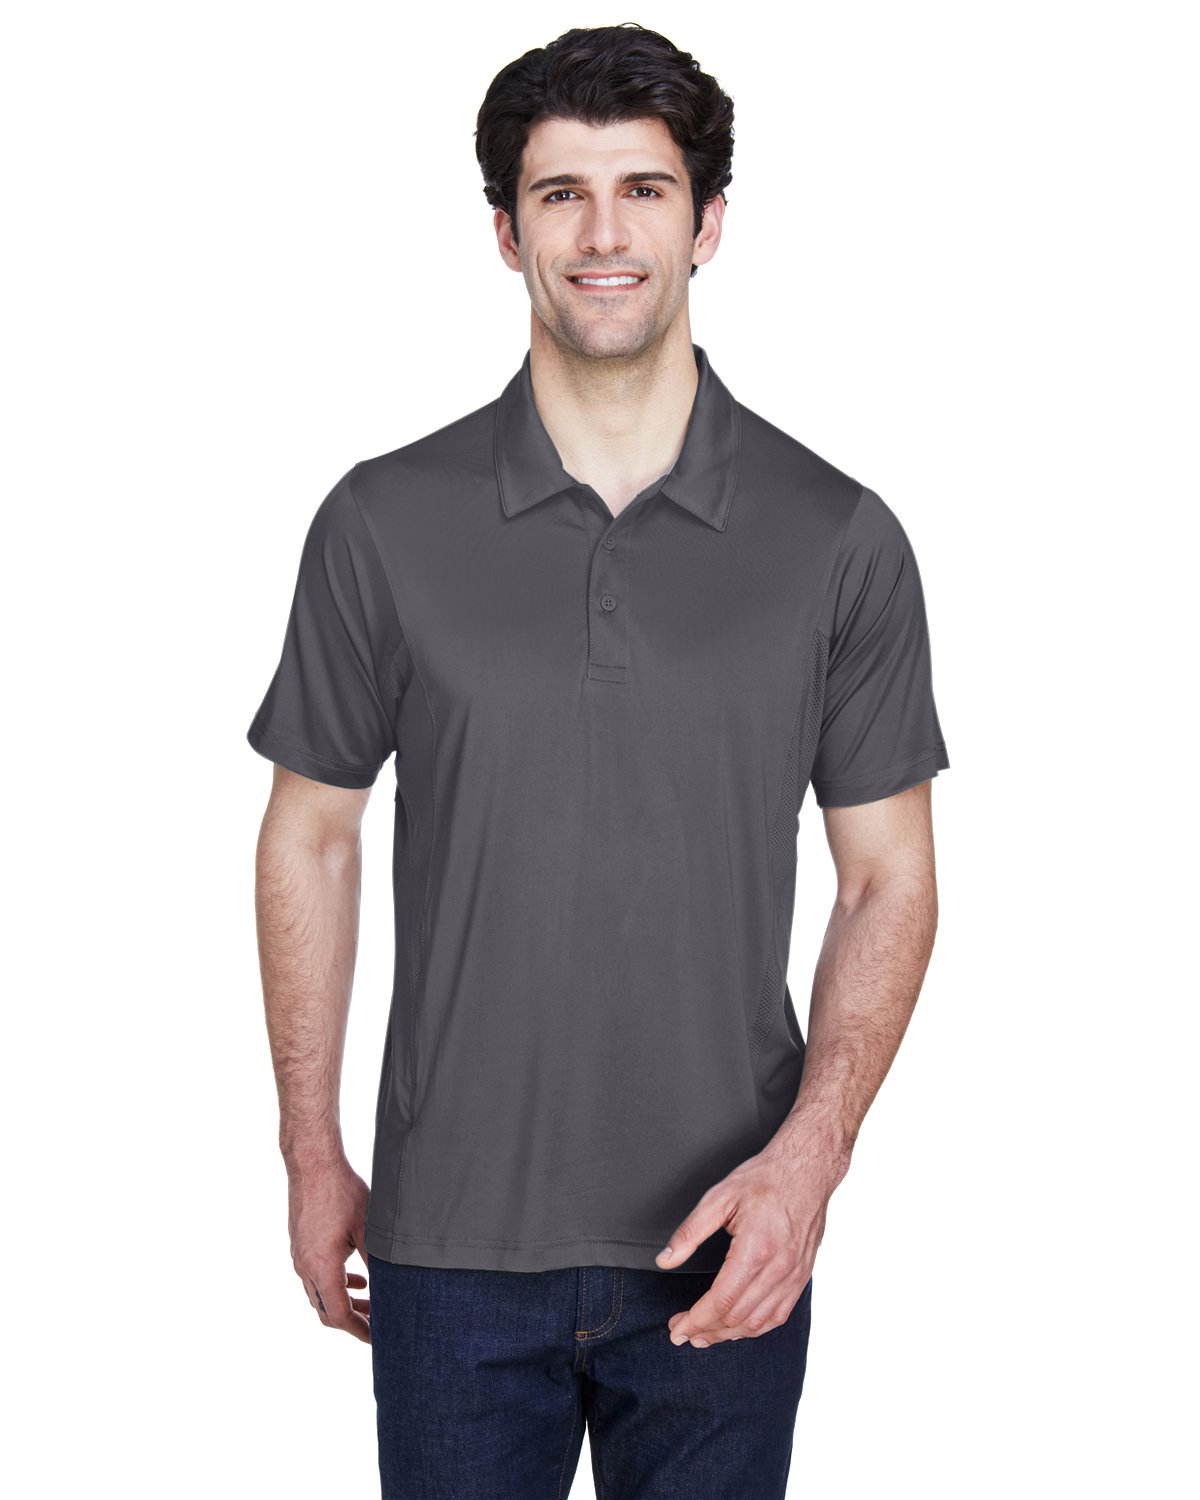 Team 365 Men's Charger Performance Polo SPORT GRAPHITE